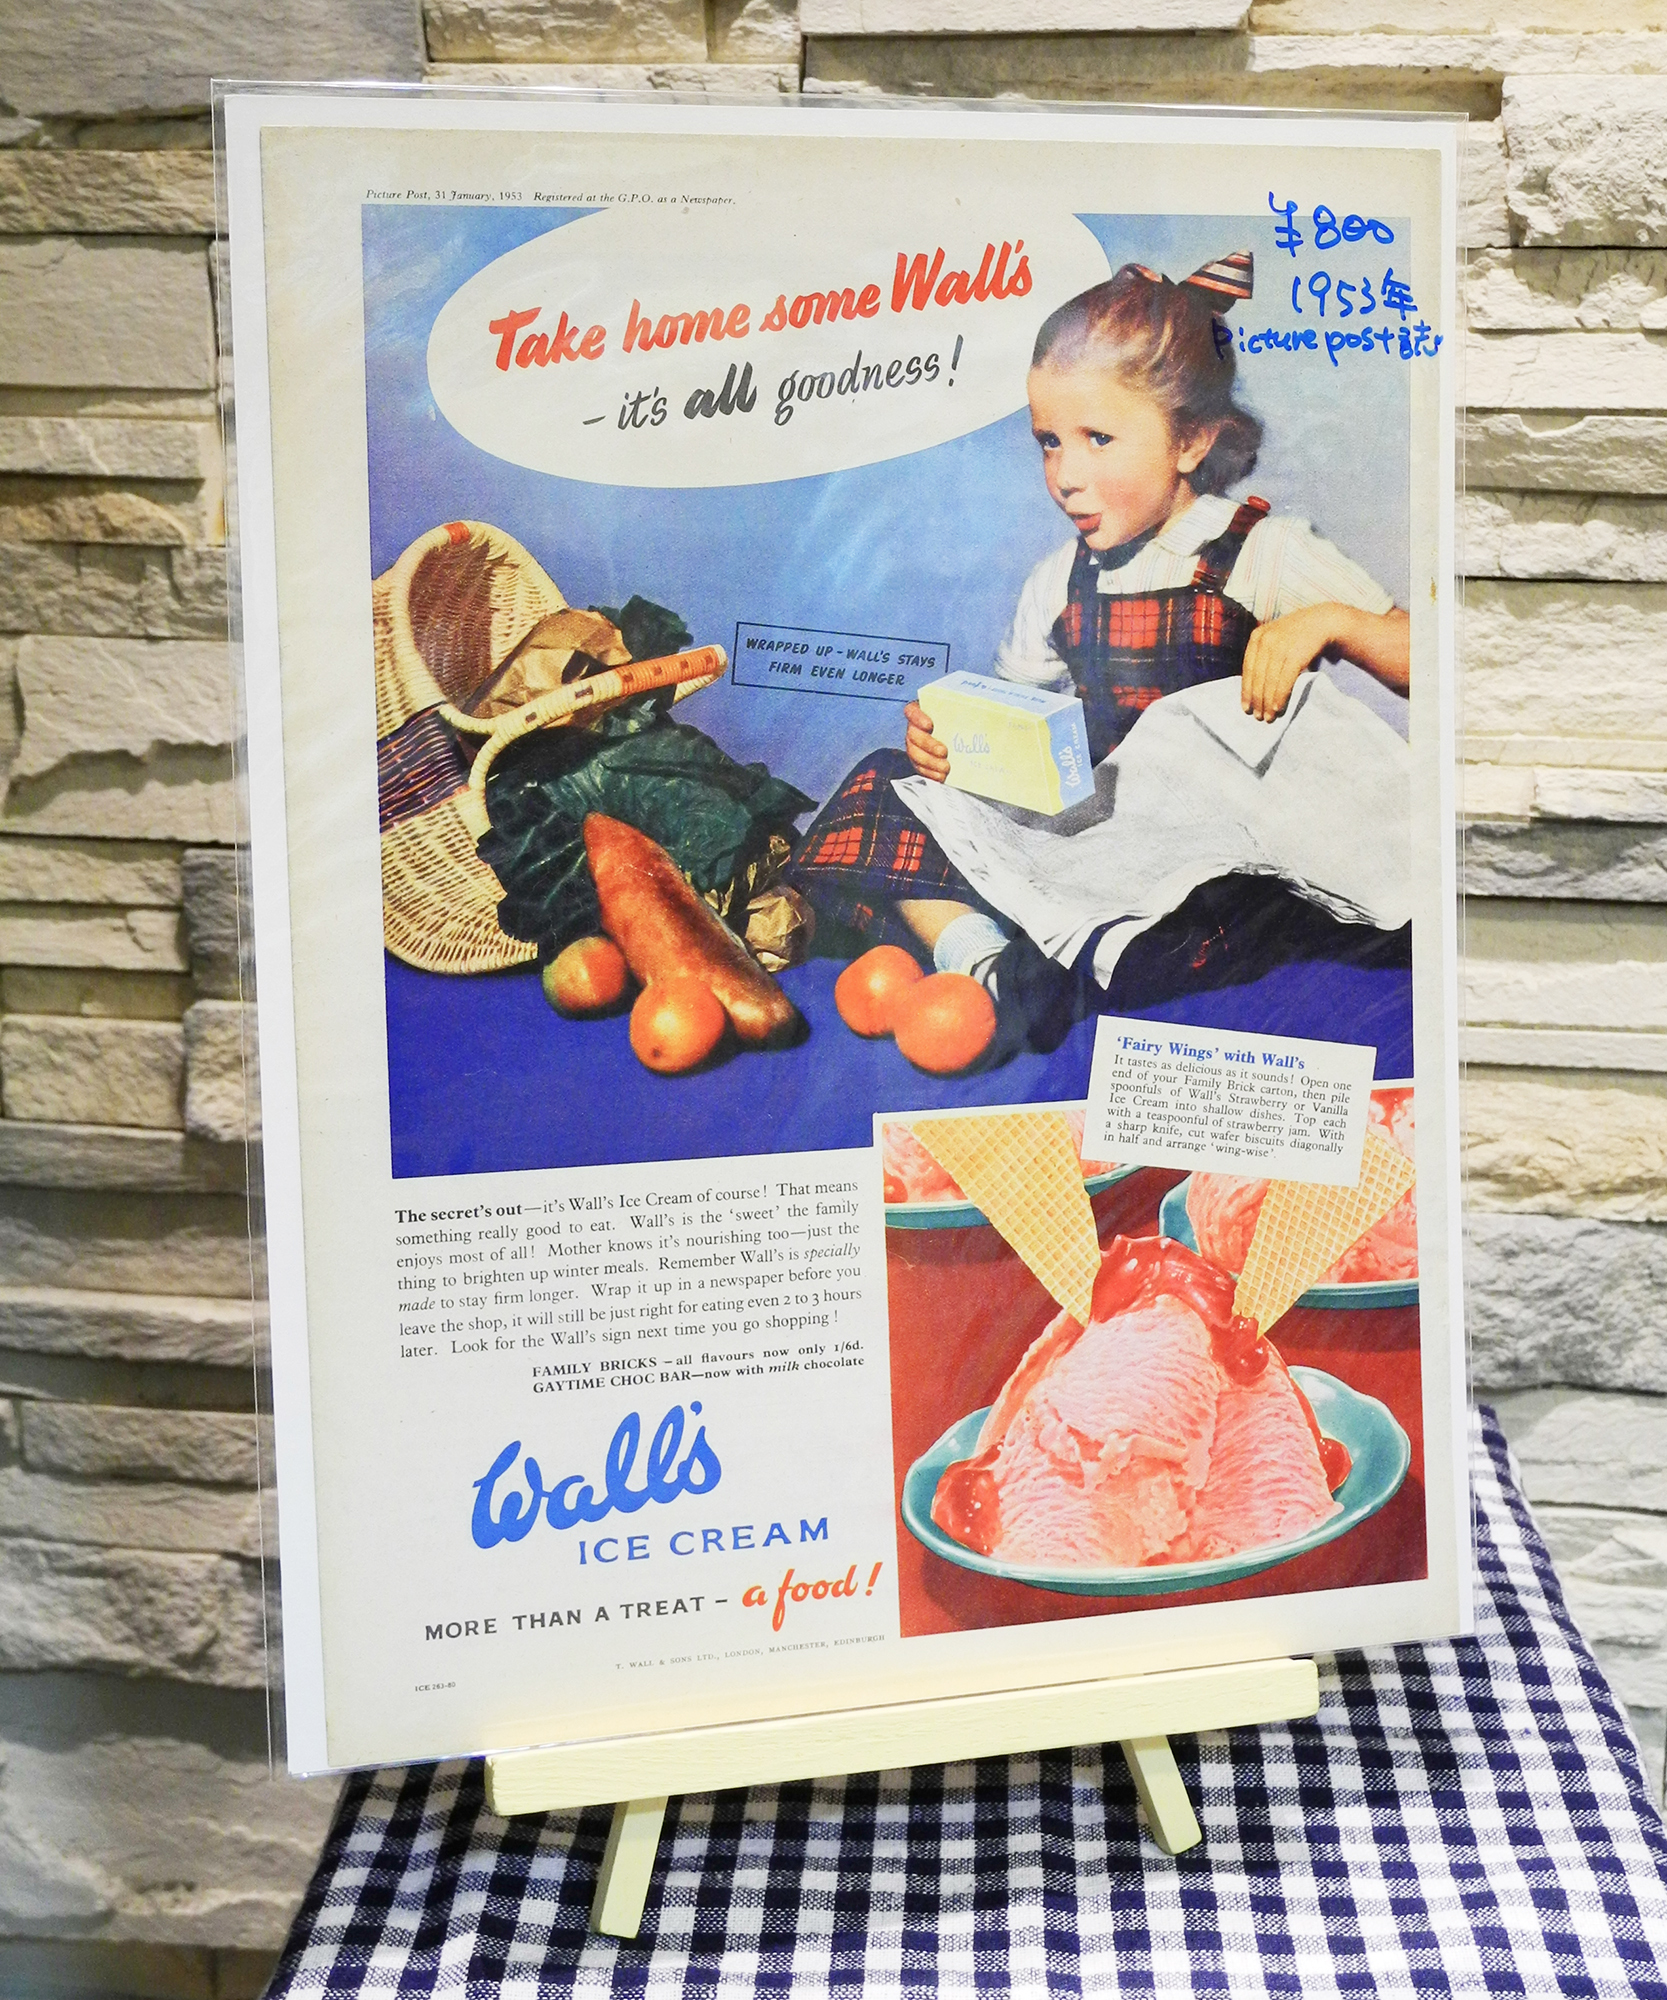 【Vintage品】雑誌切り抜き広告 WALL'S ICE CREAM 1953年 イギリス Picure Post誌 /0234n